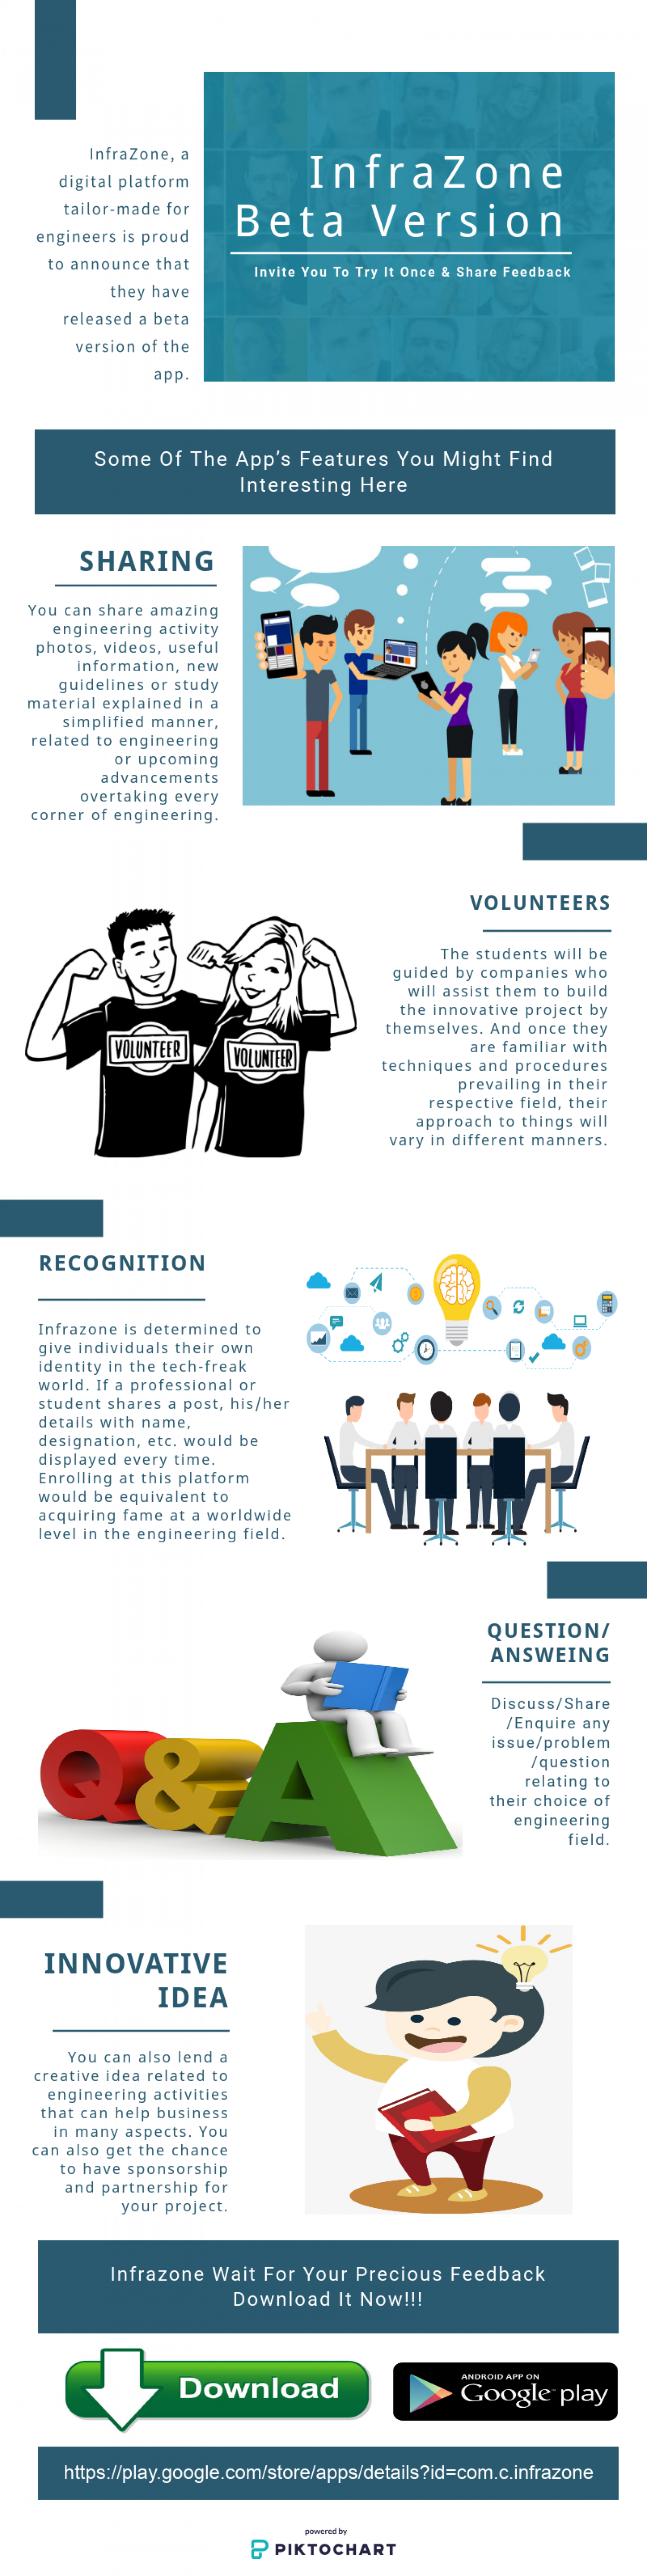 Engineering Online Community Infographic